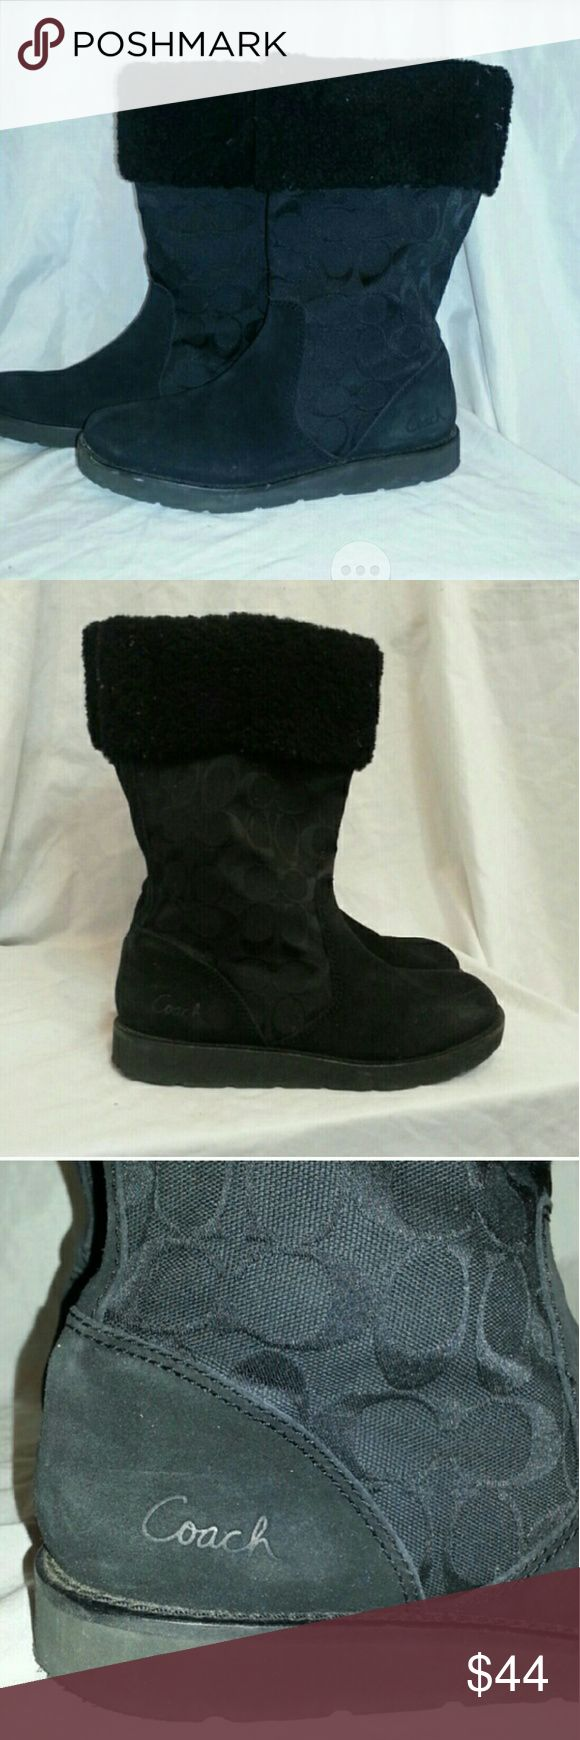 Black Coach boots High quality!  I wore them last winter and they still lookthe same. Comfy, can be worn all year, sturdy base bottoms!!, faux lambswool at top, coach logo and suede?(?)  MAKE BUNDLE OFFERS! Make your own bundle! Name your price! Negotiate! Lots of FREE things listed. G'd bless u! X  ~~~ Share a few of my items!!! I'LL SHARE YOURS!!!~~~ ~~~ Share a few of my items!!! I'LL SHARE YOURS!!!~~~ ~~~ Share a few of my items!!! I'LL SHARE YOURS!!!~~~ Coach Shoes Winter & Rain Boots